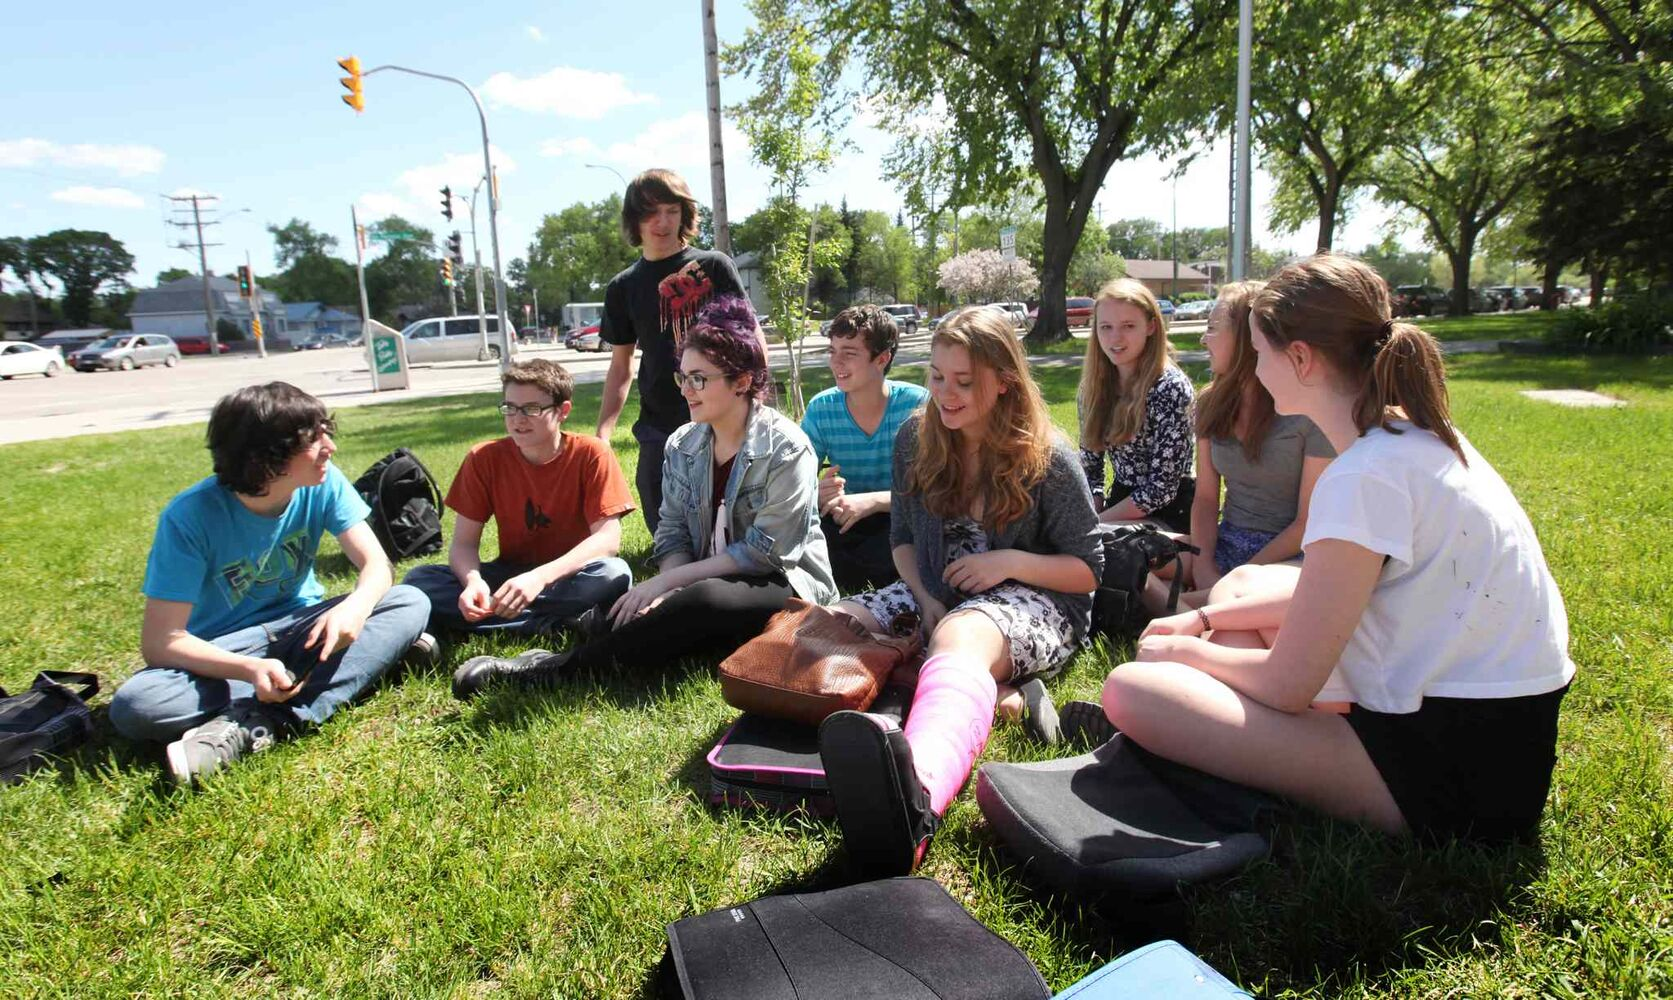 Former Windsor School students gather together on the front lawn in early June during the final days of their first year in high school at Glenlawn Collegiate.  From left: Thomas, Noah, Garrett, Shelby, Quinn, Mackenzie, Hailey, Aby and Sydney.   (RUTH BONNEVILLE / WINNIPEG FREE PRESS)